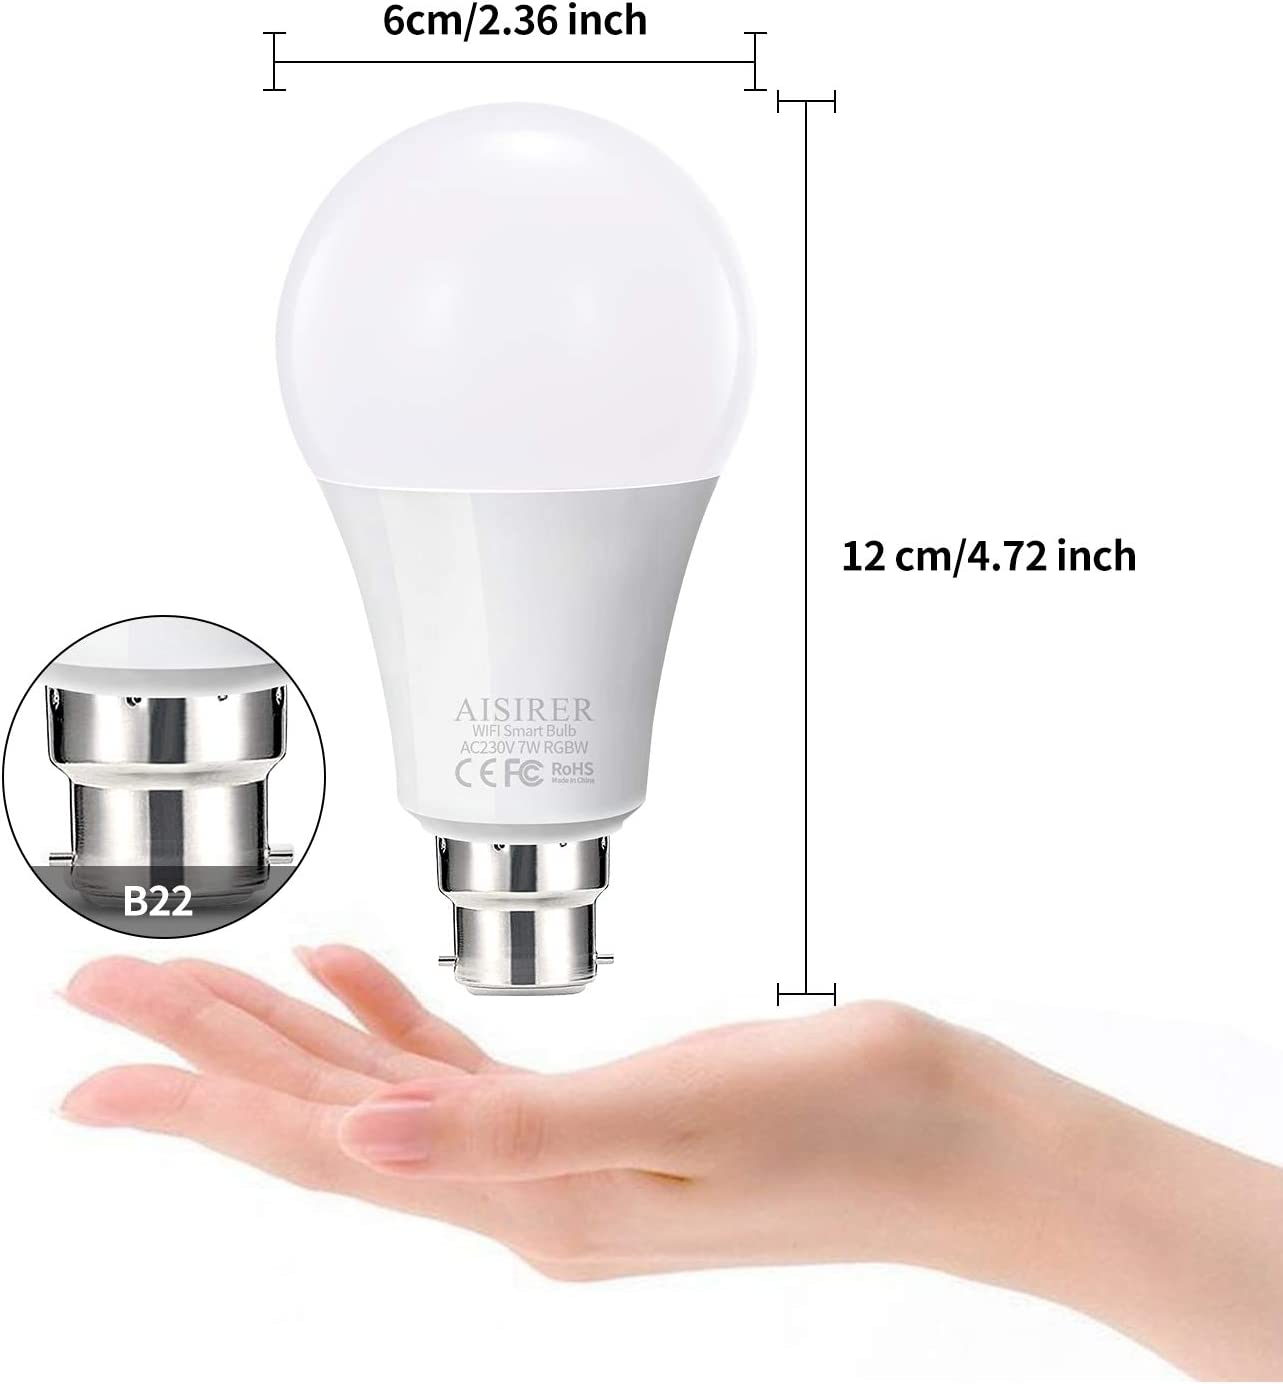 AISIRER Smart Light Bulb 1 Pack No Hub Required 7W Equivalent 60W Works with Alexa Google Home and IFTTT WiFi Smart Bulb Alexa Light Bulbs B22 Bayonet Colour Dimmable 2700K